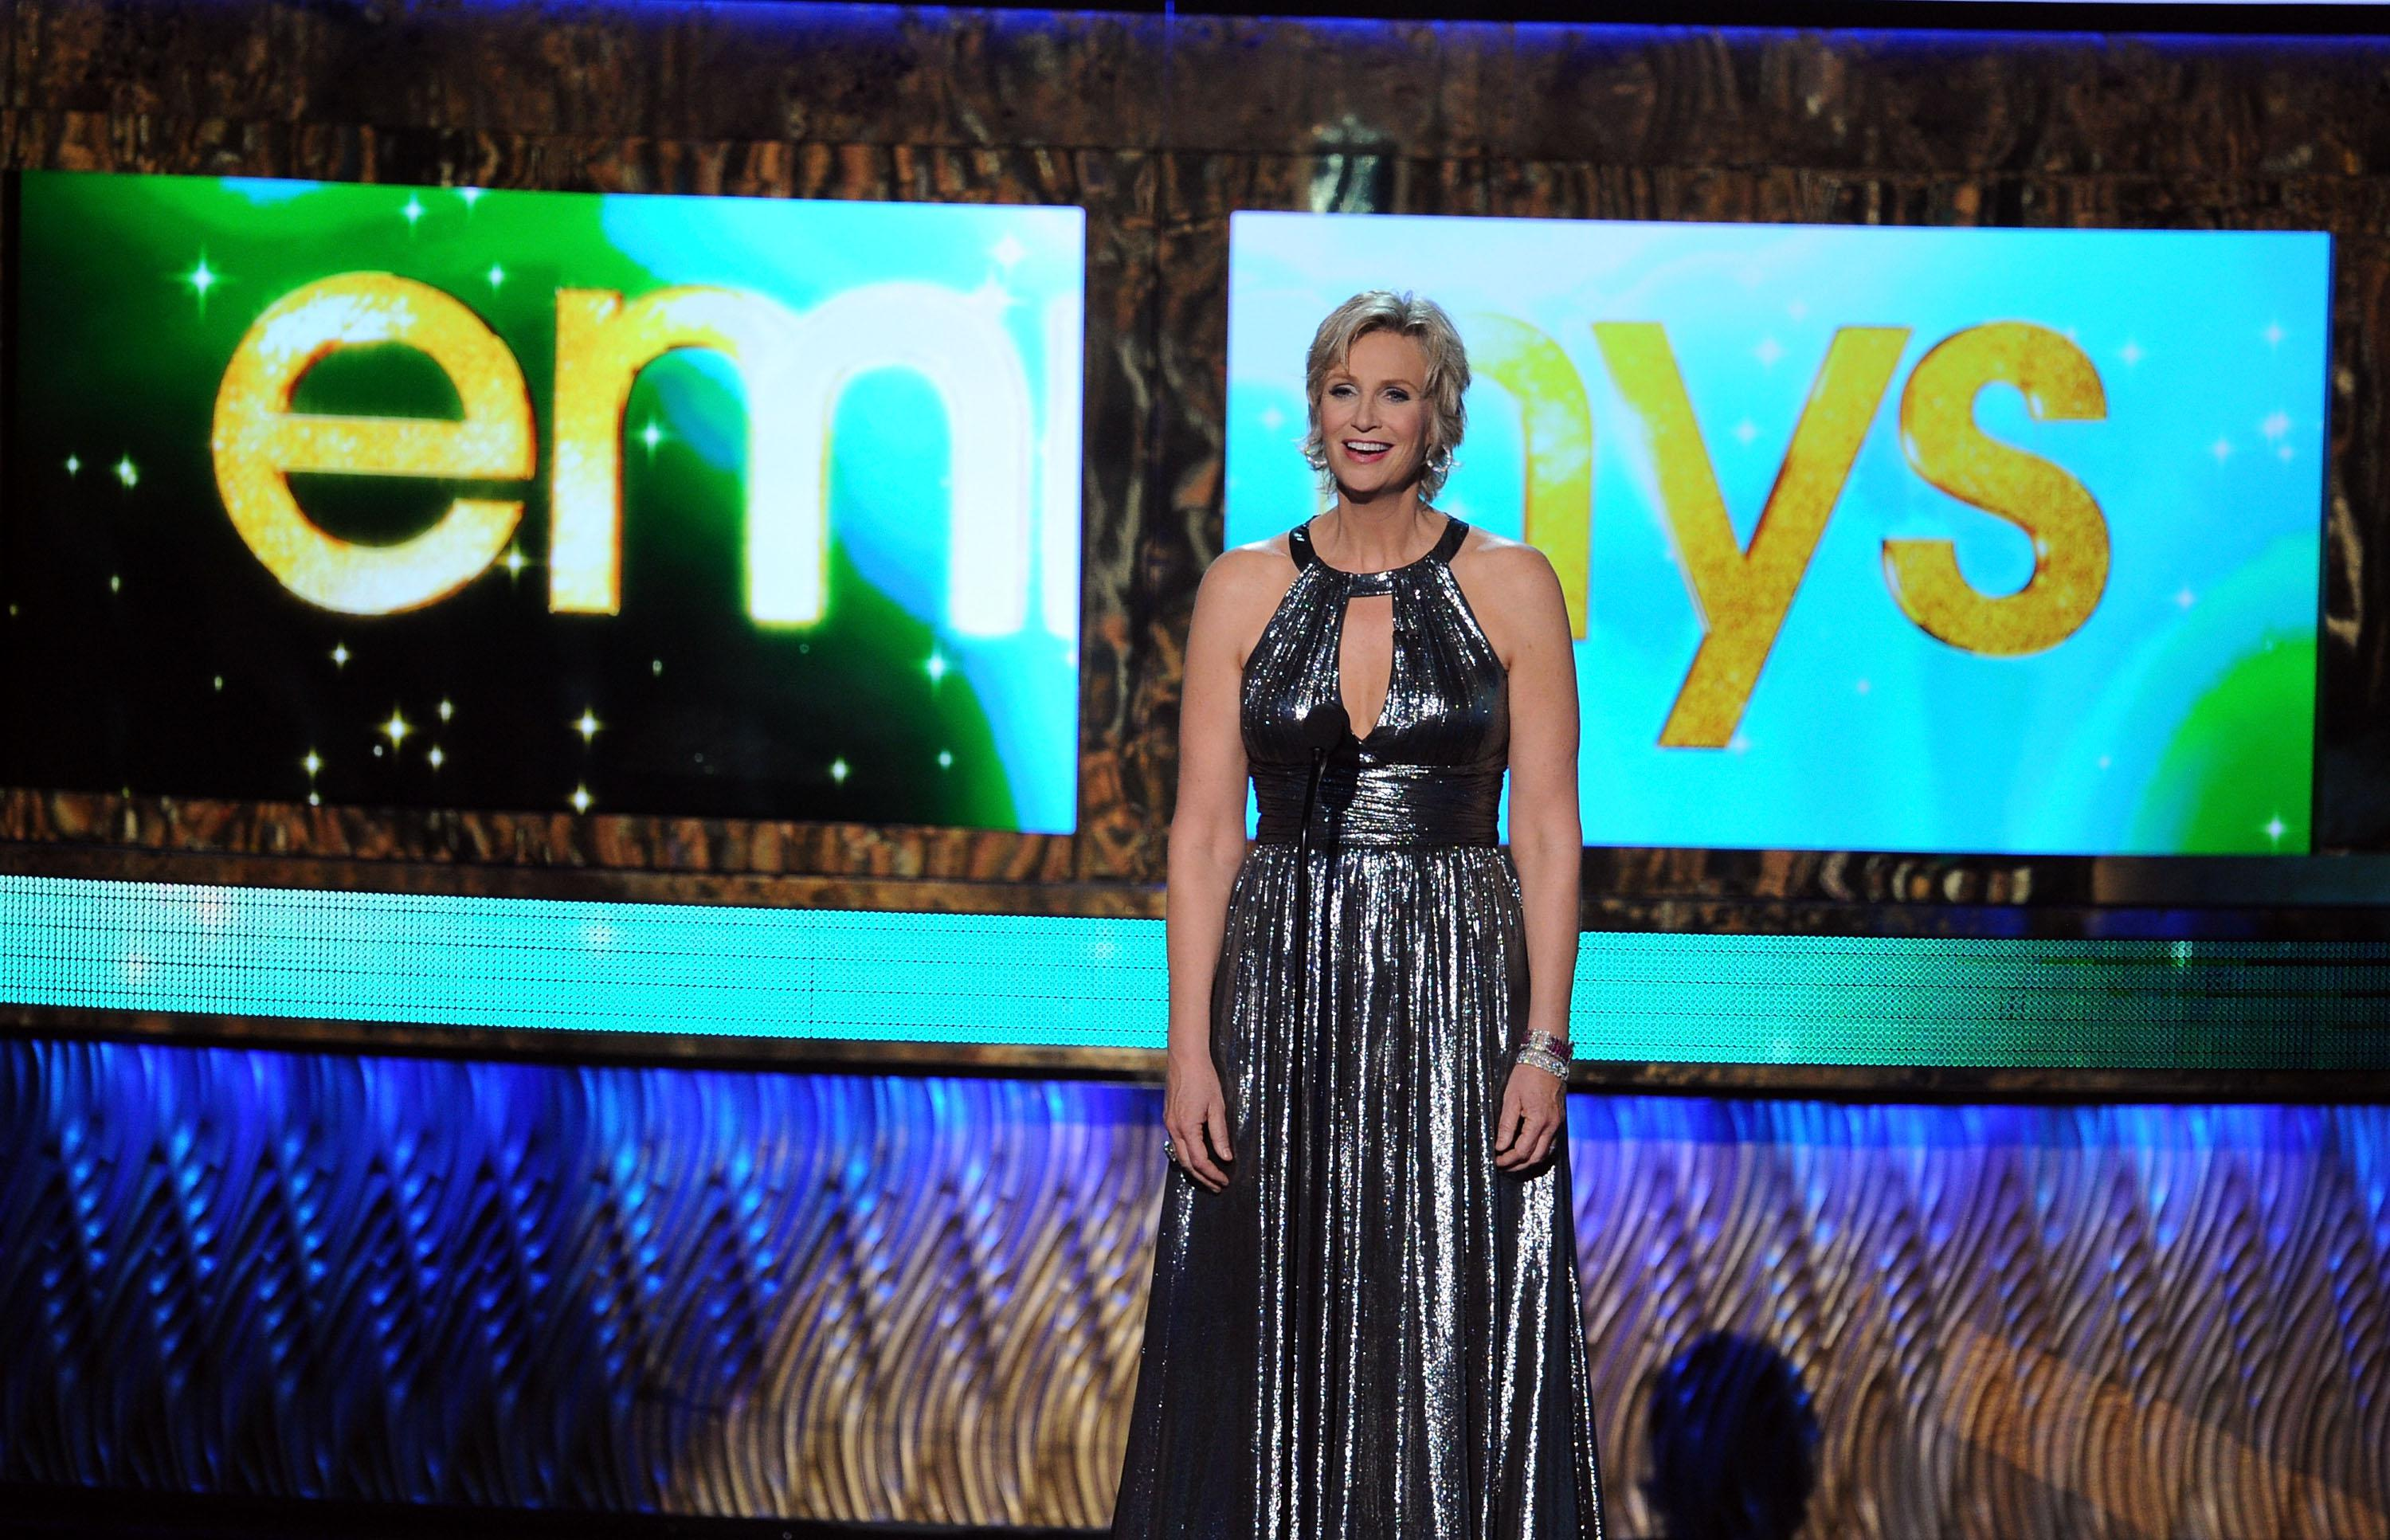 63rd Annual Primetime Emmy Awards - Show